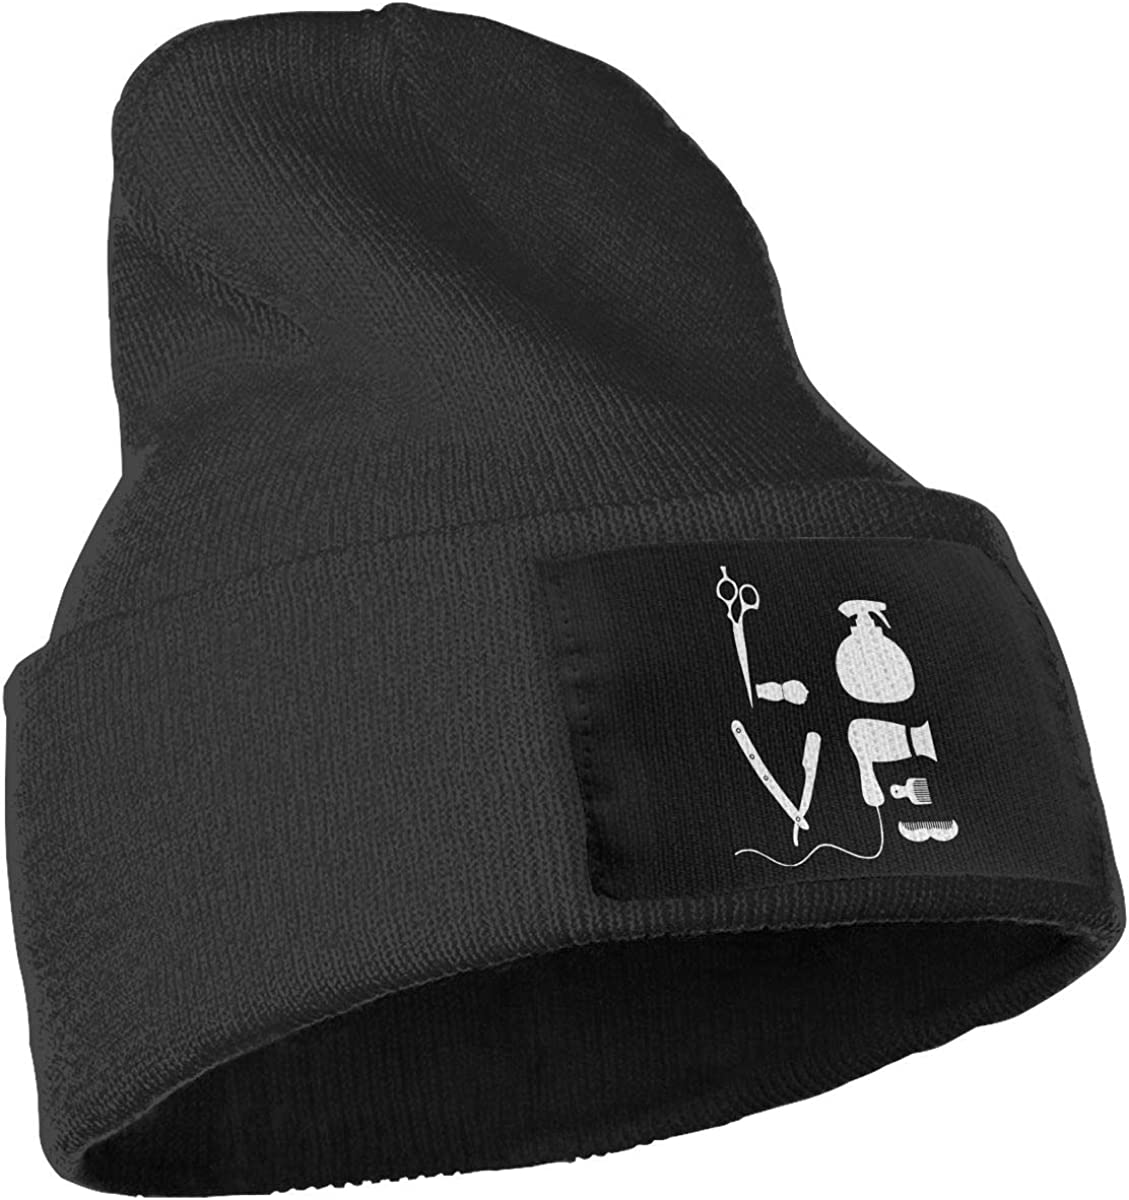 Unisex Barber Salon Hairdresser Love Outdoor Warm Knit Beanies Hat Soft Winter Knit Caps